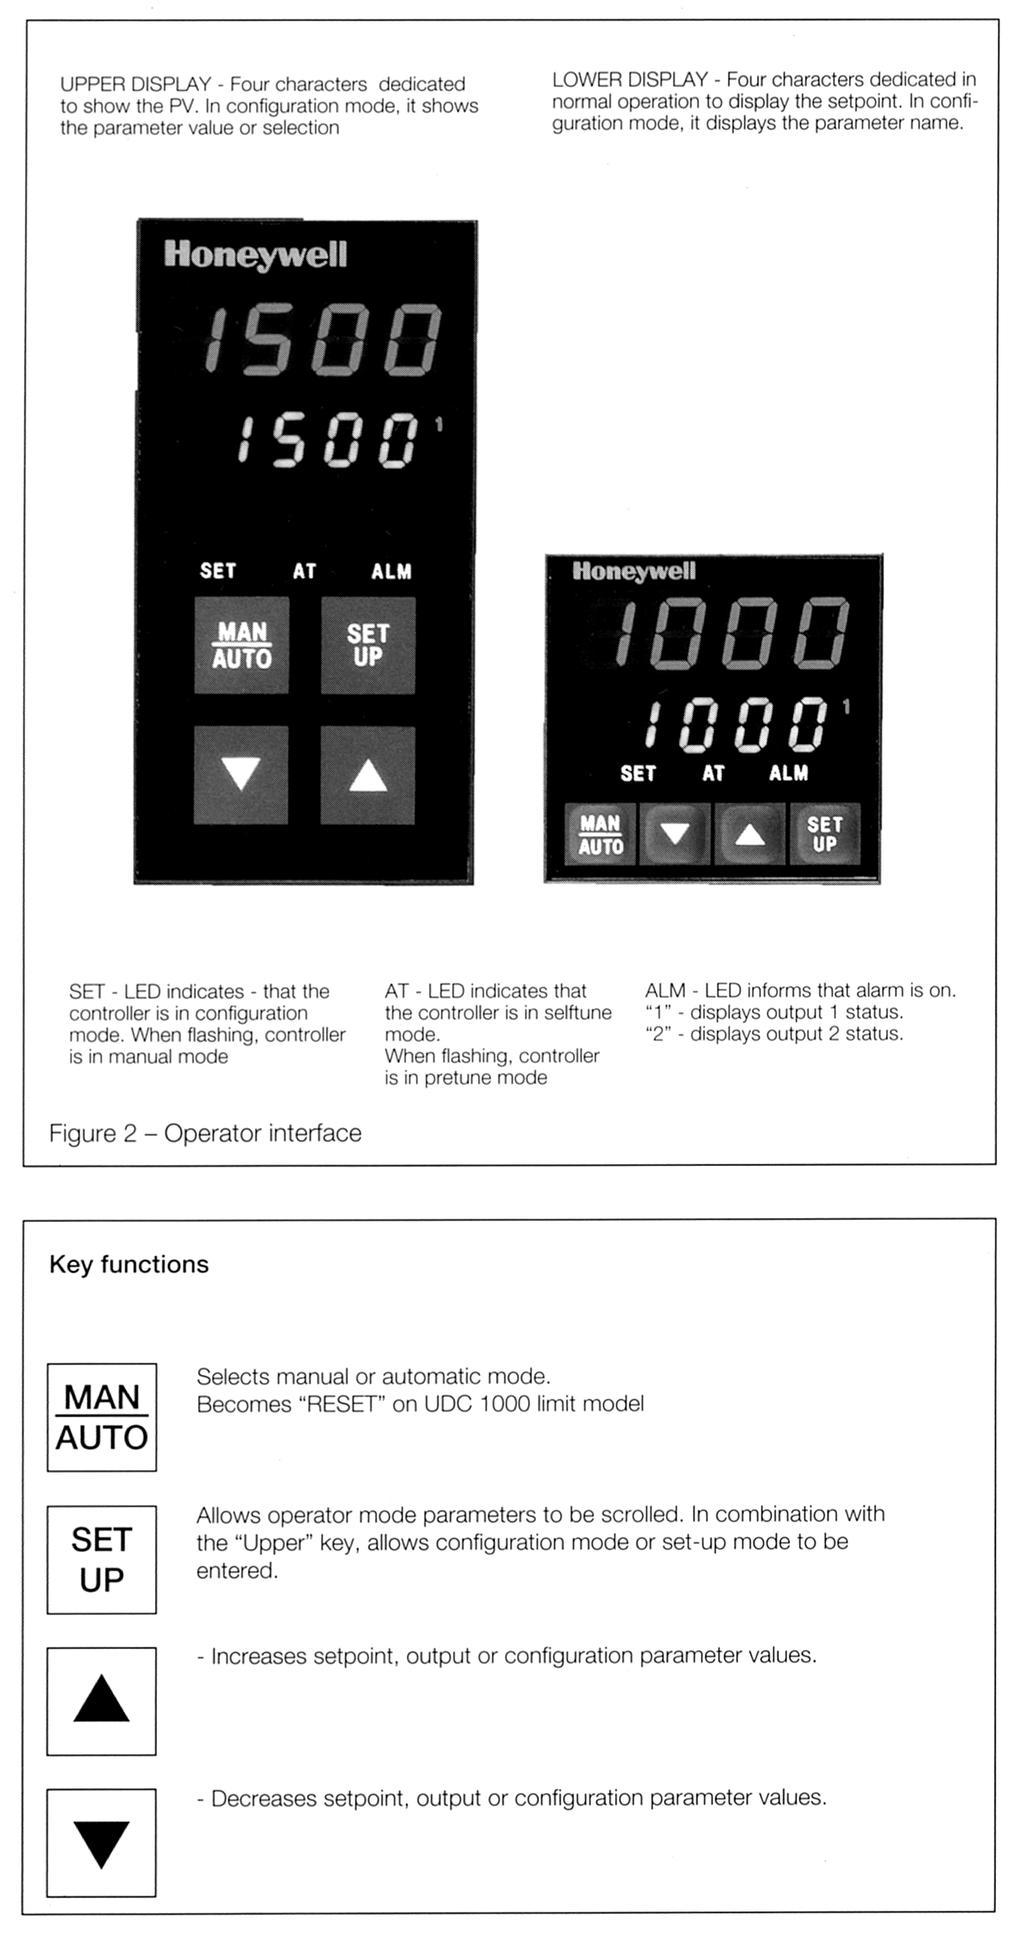 Udc1000 And Udc1500 Micro Pro Series Universal Digital Controllers Pdf V15w Watertight Miniature Switches Switchtm Page 2 Setpoint Ramp According To A Defined Rate The Sp Ramps Current